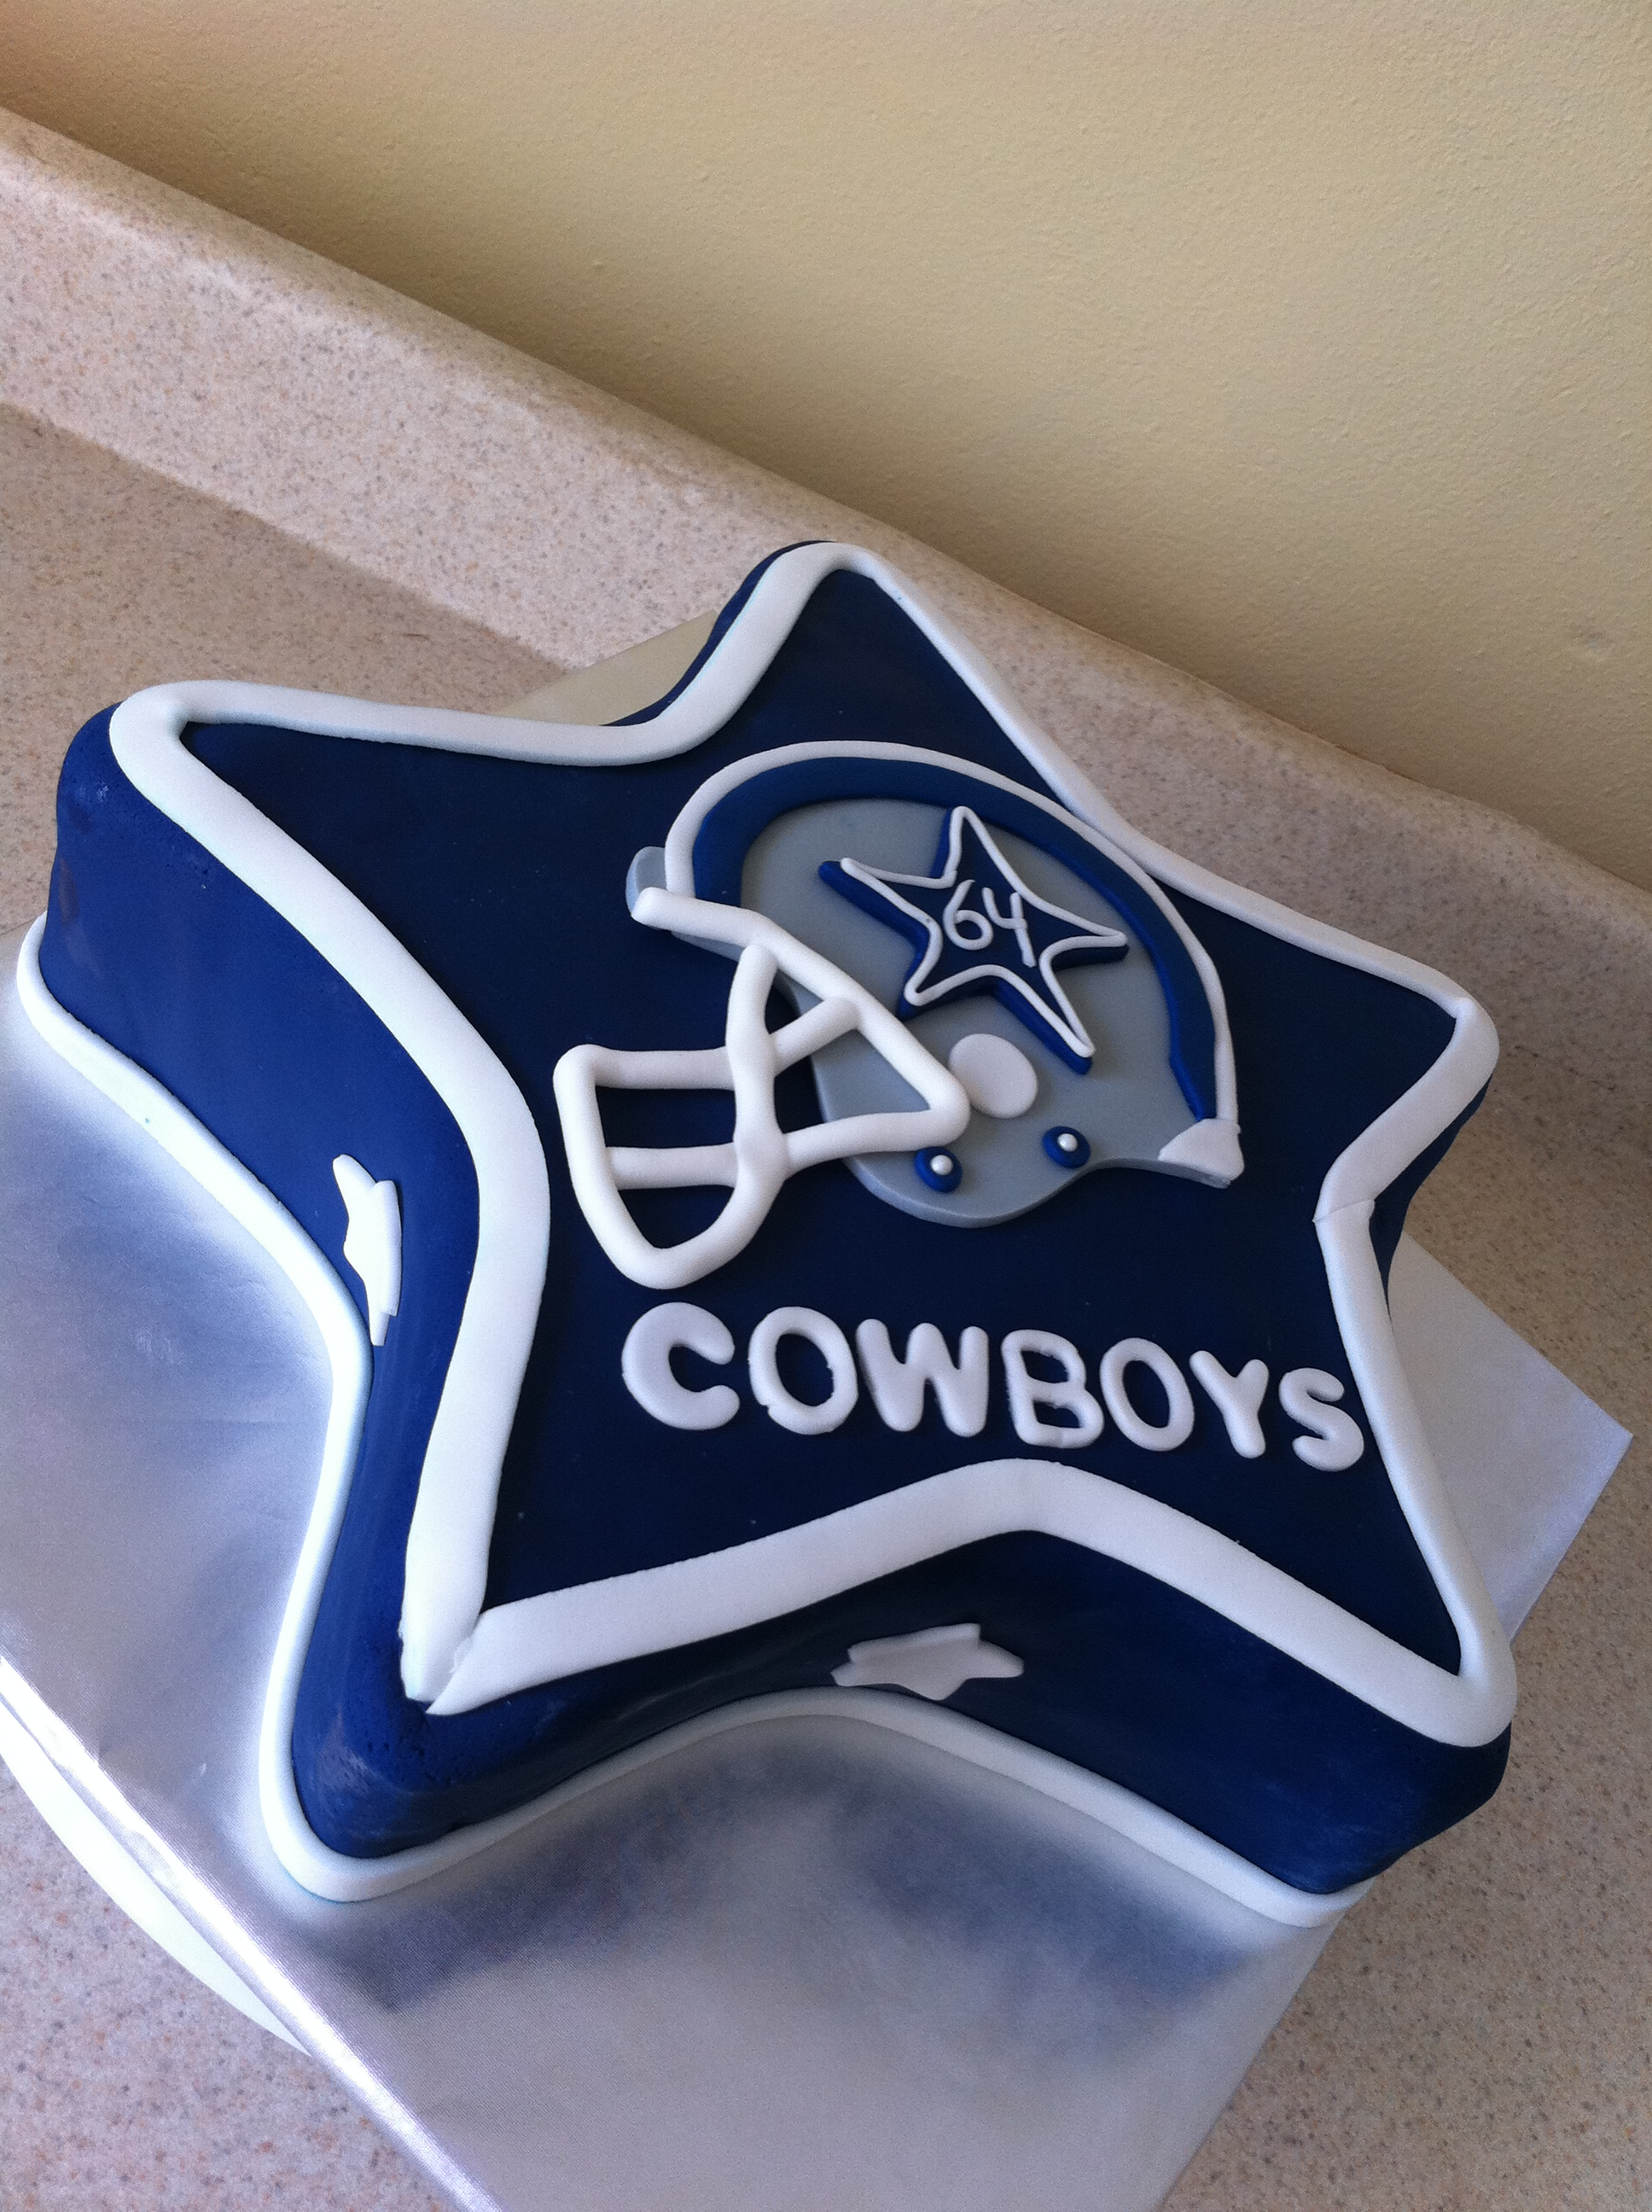 Dallas Cowboys themed birthday cake. Feeds 20-25. MSRP $100.